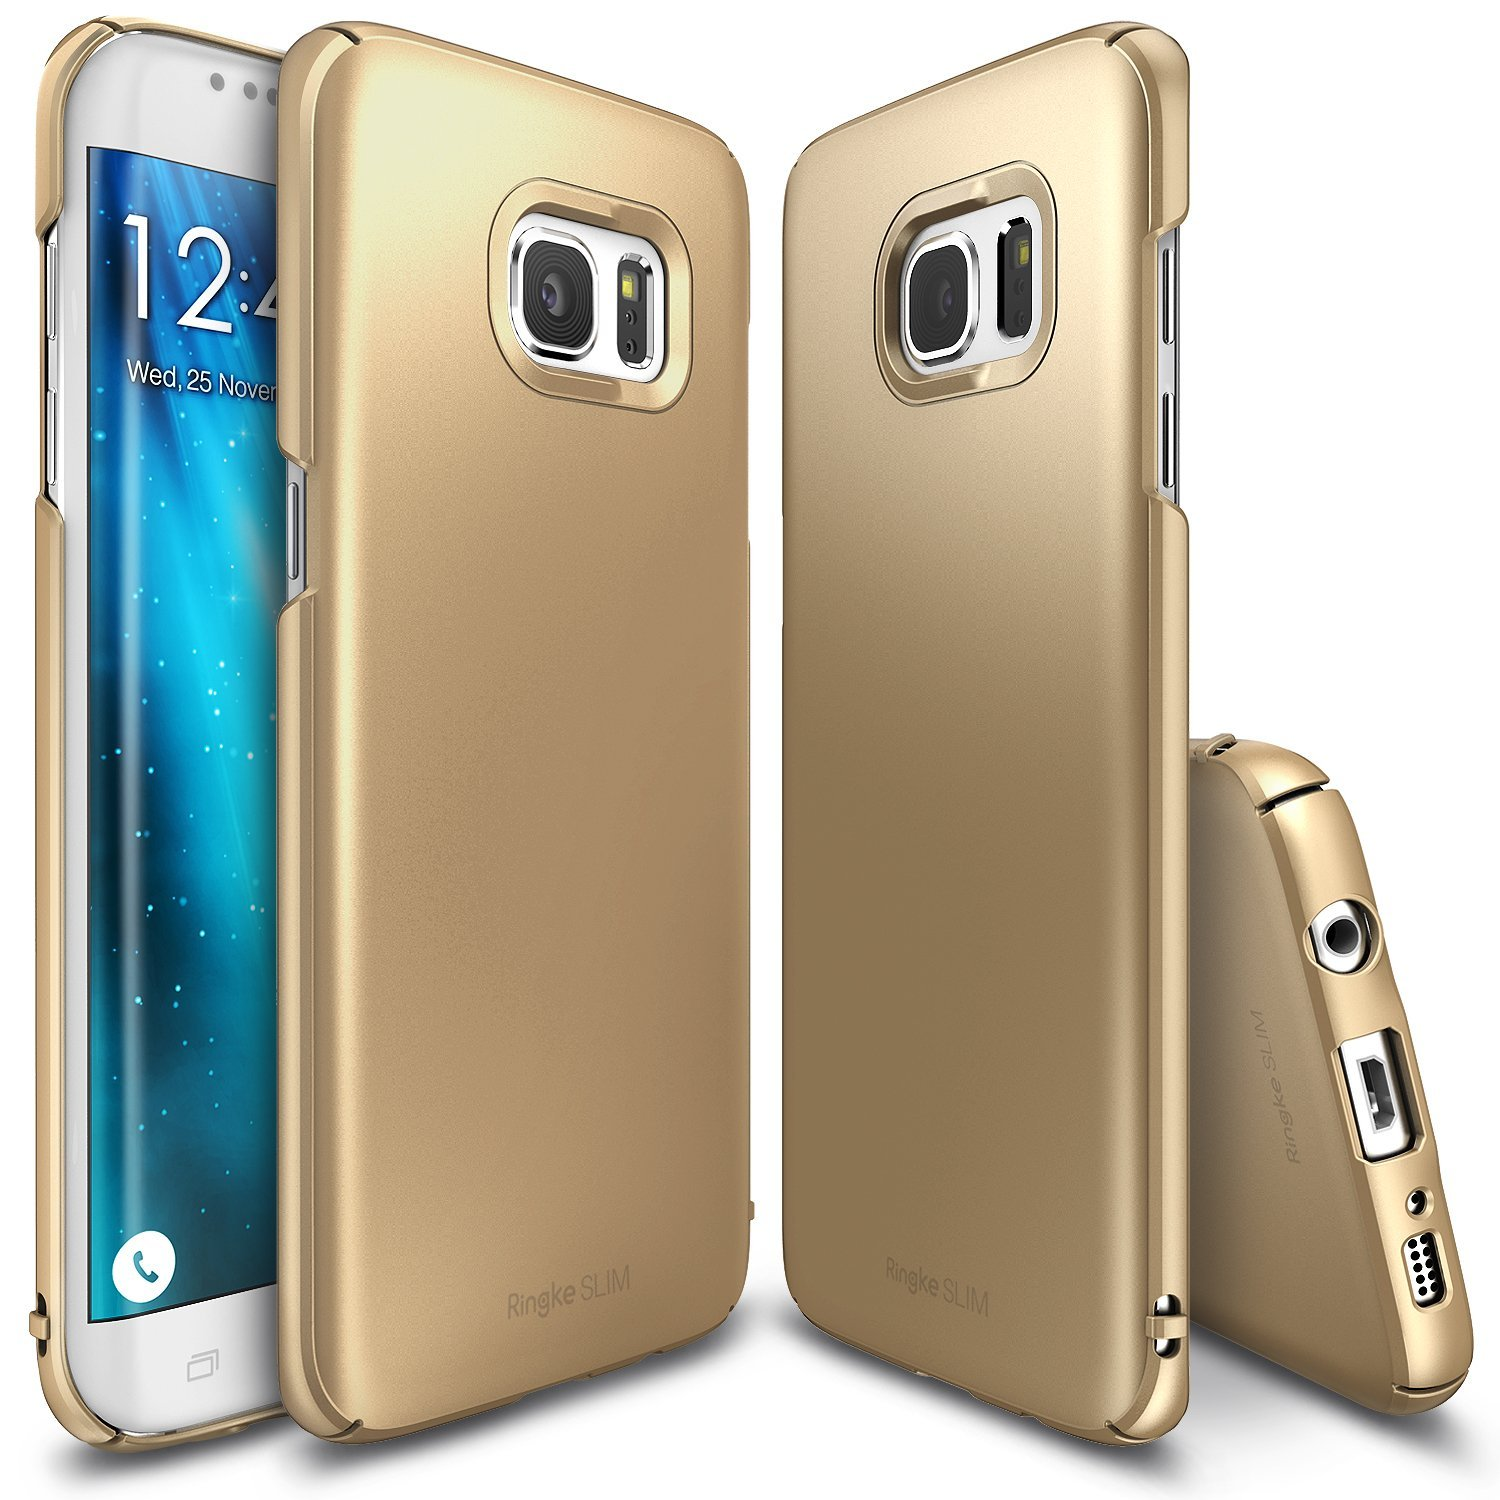 Samsung Galaxy S7 Edge Case,Ringke [SLIM] [Royal Gold]  Snug-Fit Ultra-Thin All Coverage Hard Case